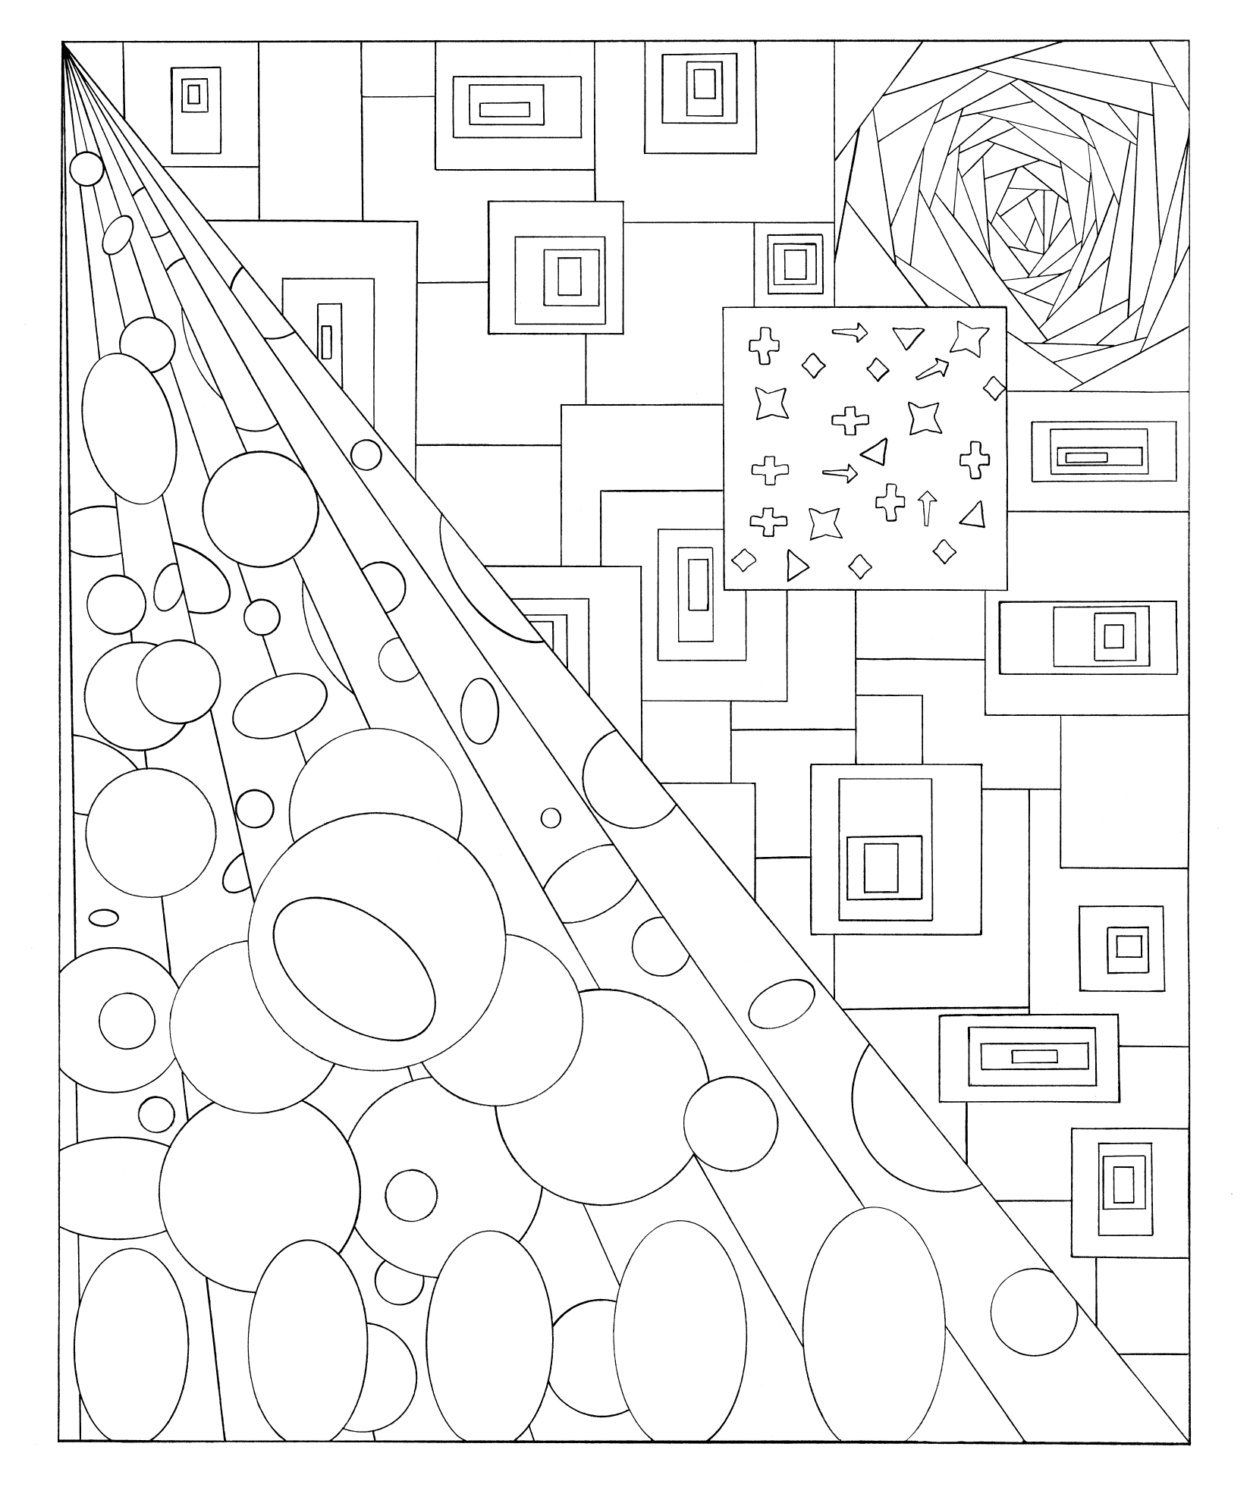 hight resolution of tunnel vision adult coloring page book sheets outline art etsy